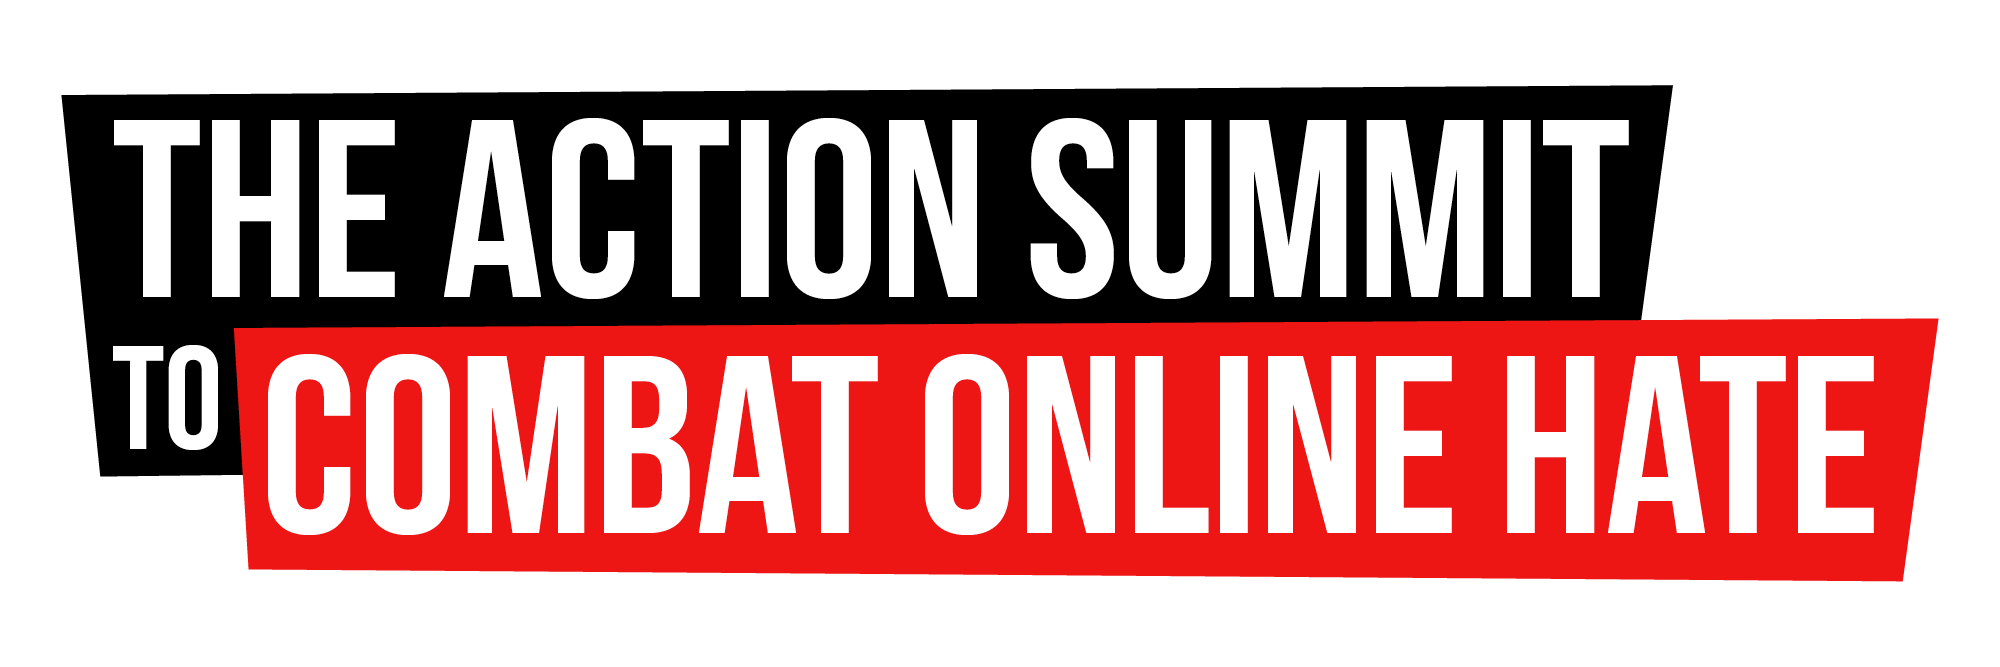 Action Summit to Combat Online Hate